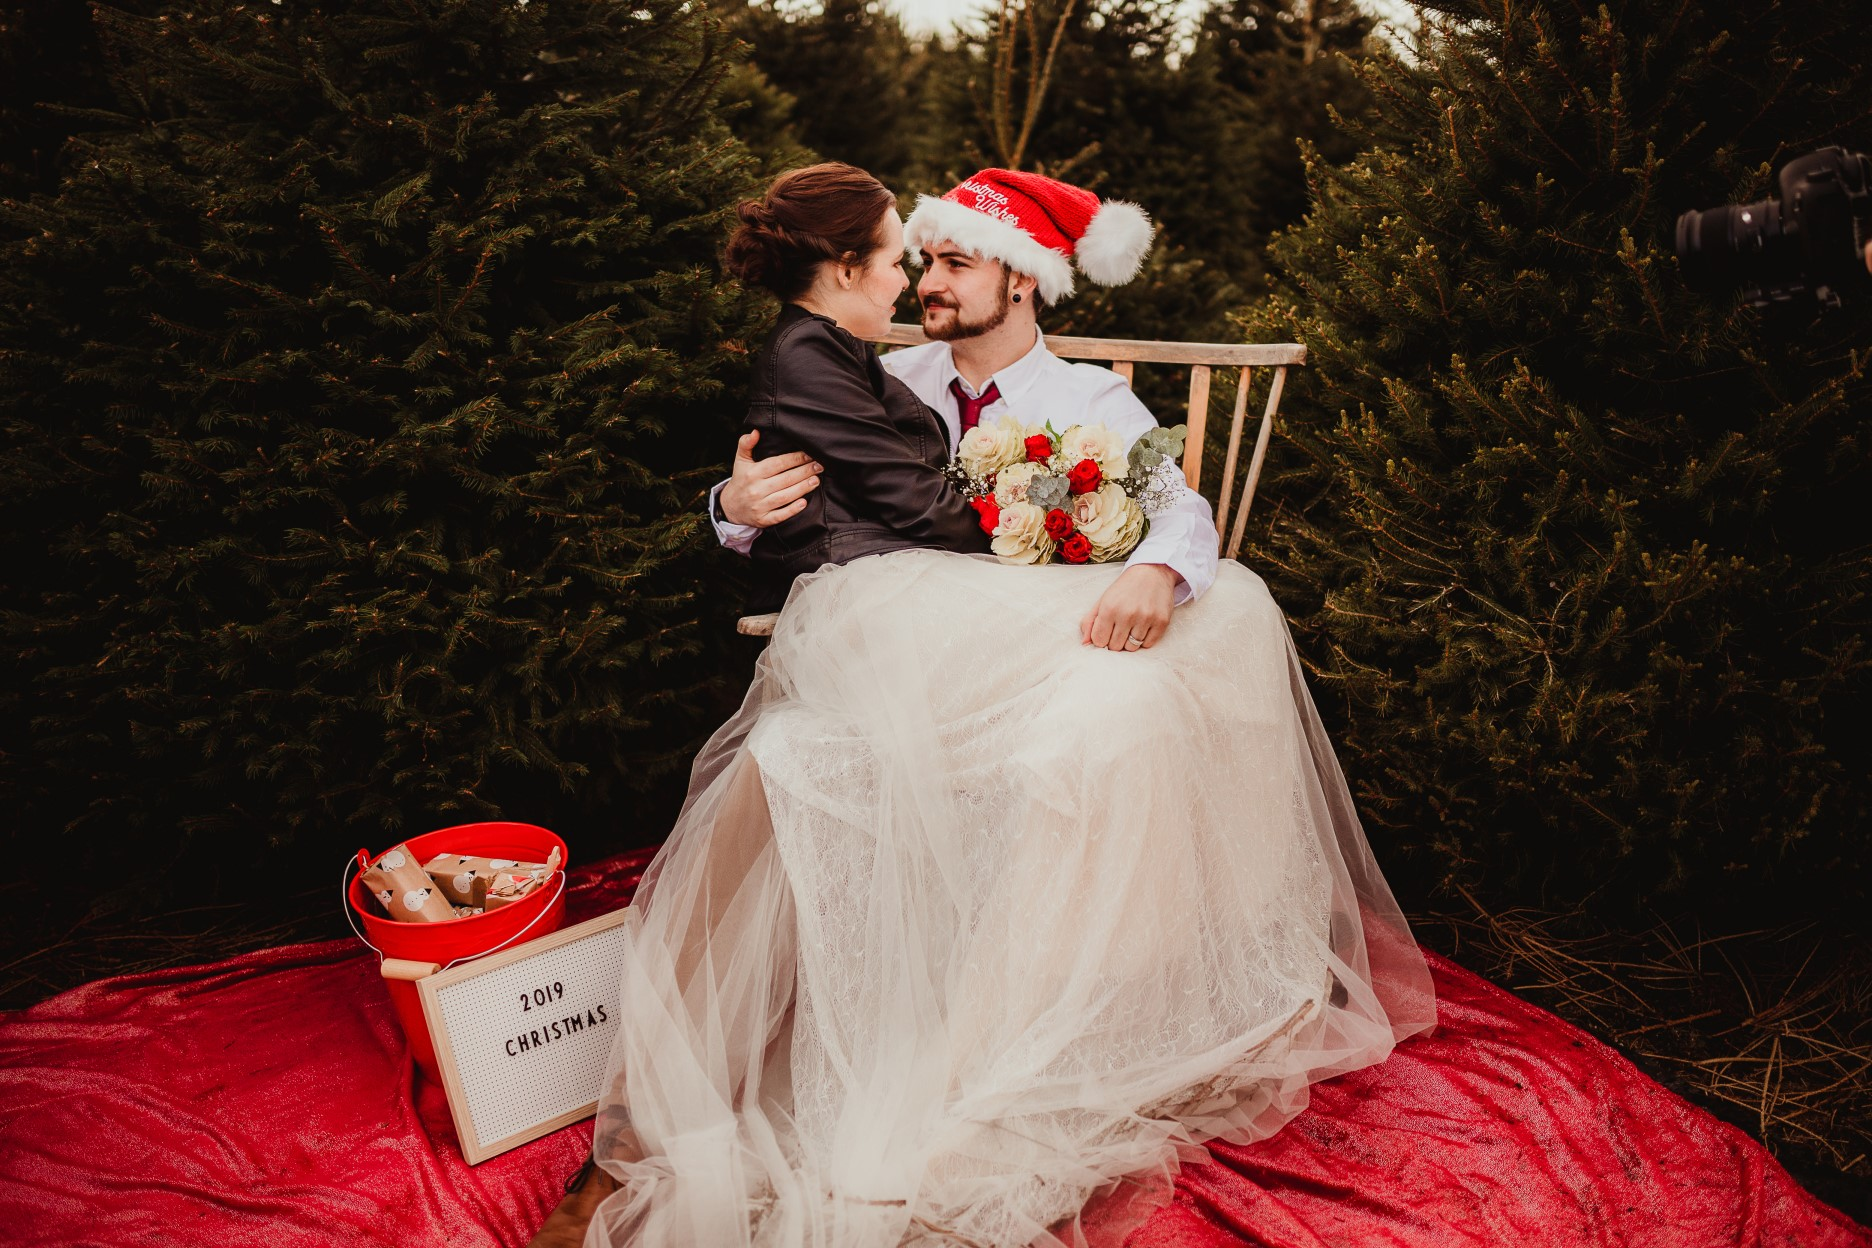 christmas elopement wedding- alternative wedding- christmas wedding- fly on the wall photography- santa wedding